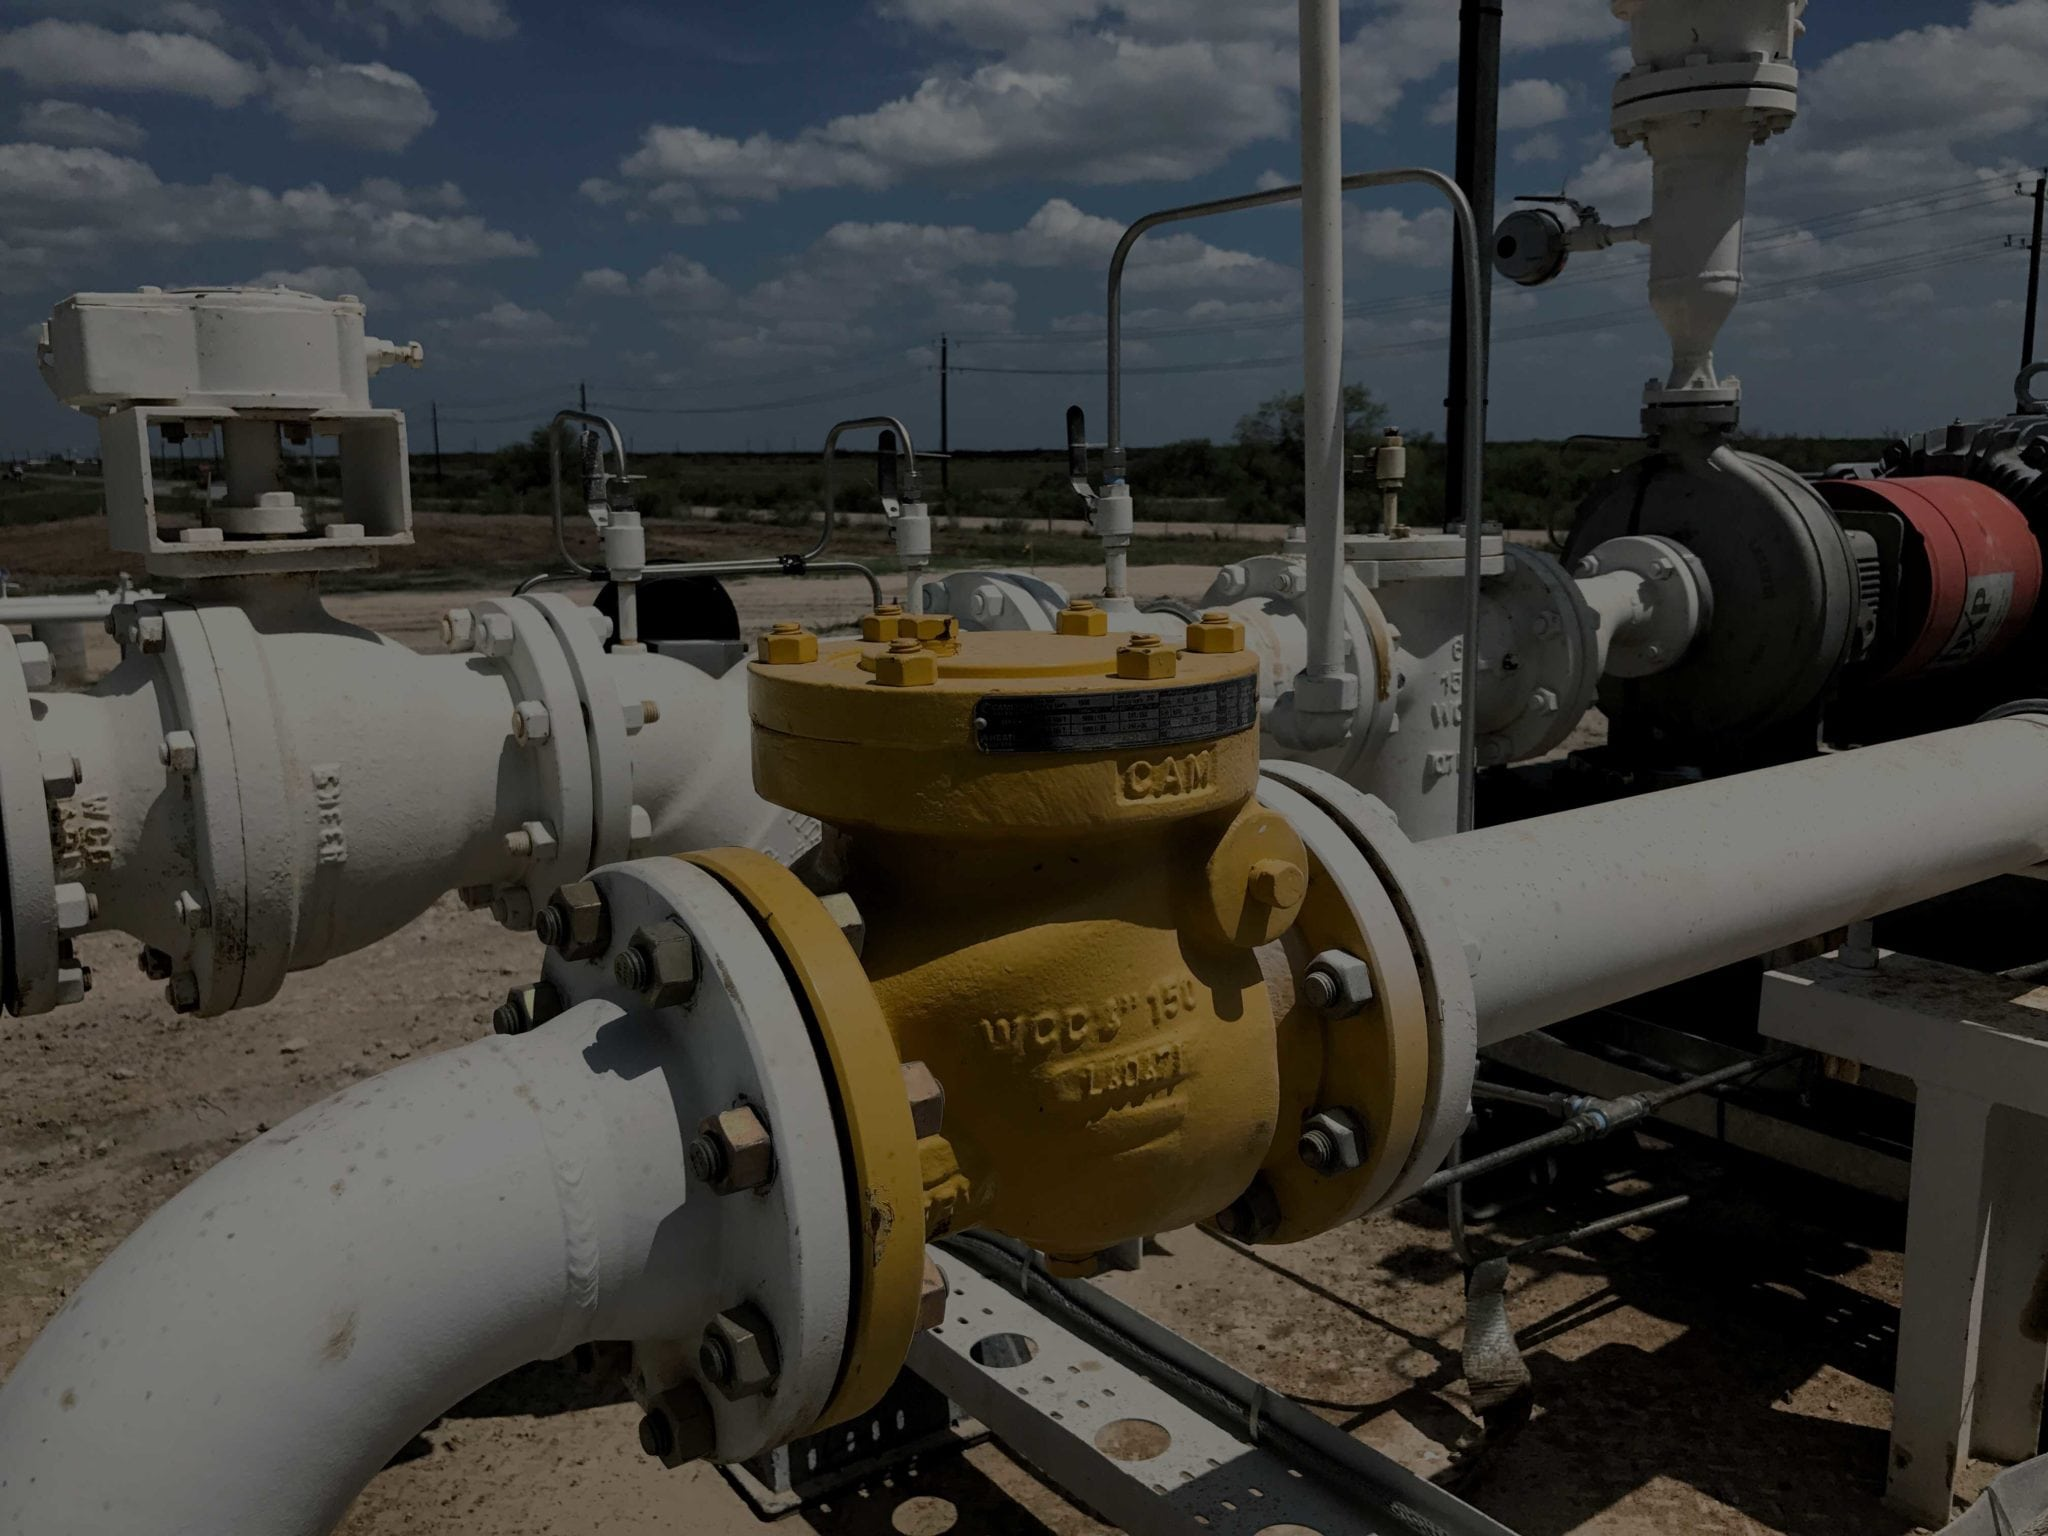 Two crude oil pipelines in a Texas oilfield.